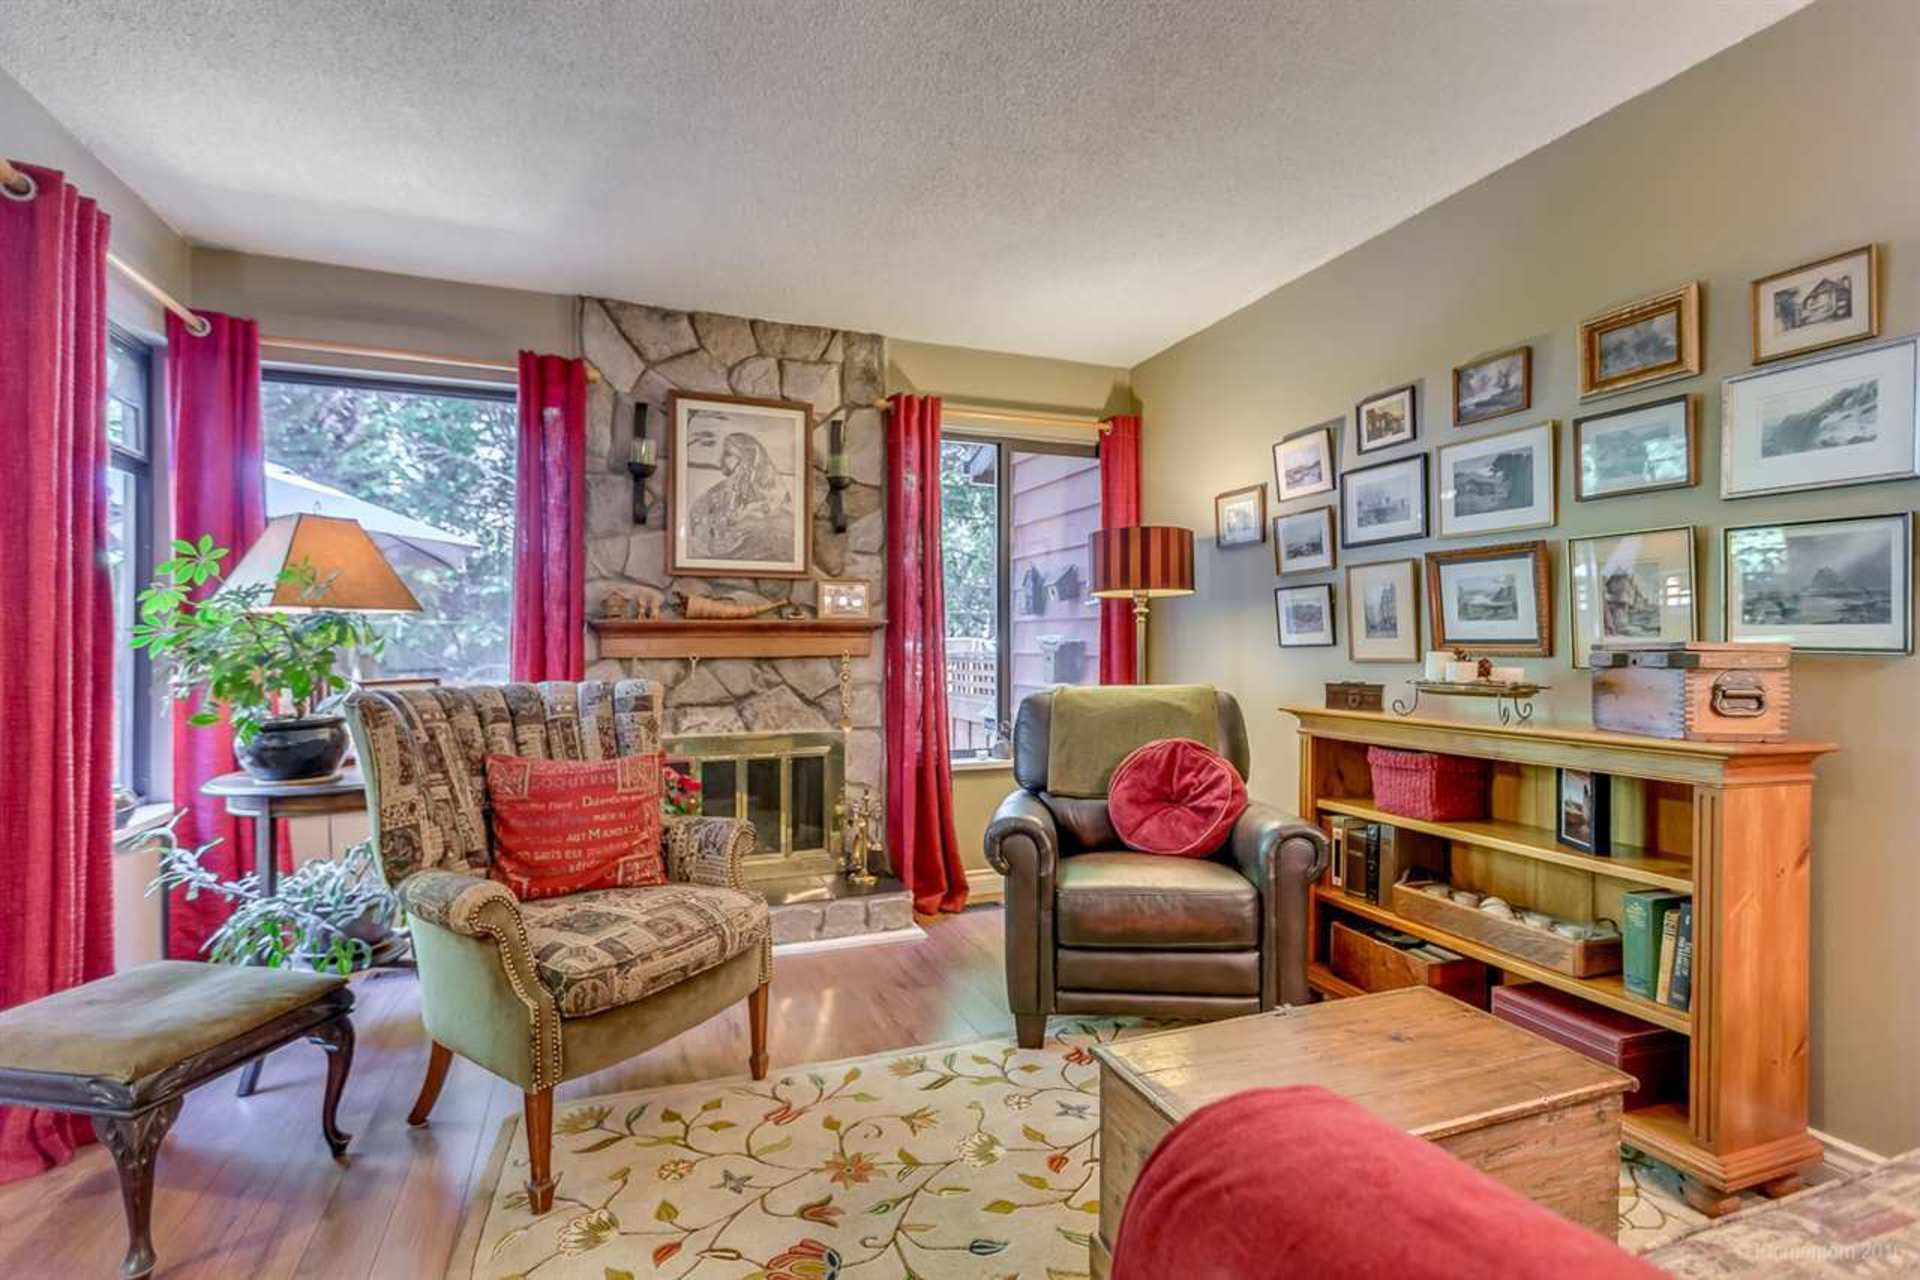 image-262100069-4 at 4857 Fernglen Drive, Greentree Village, Burnaby South